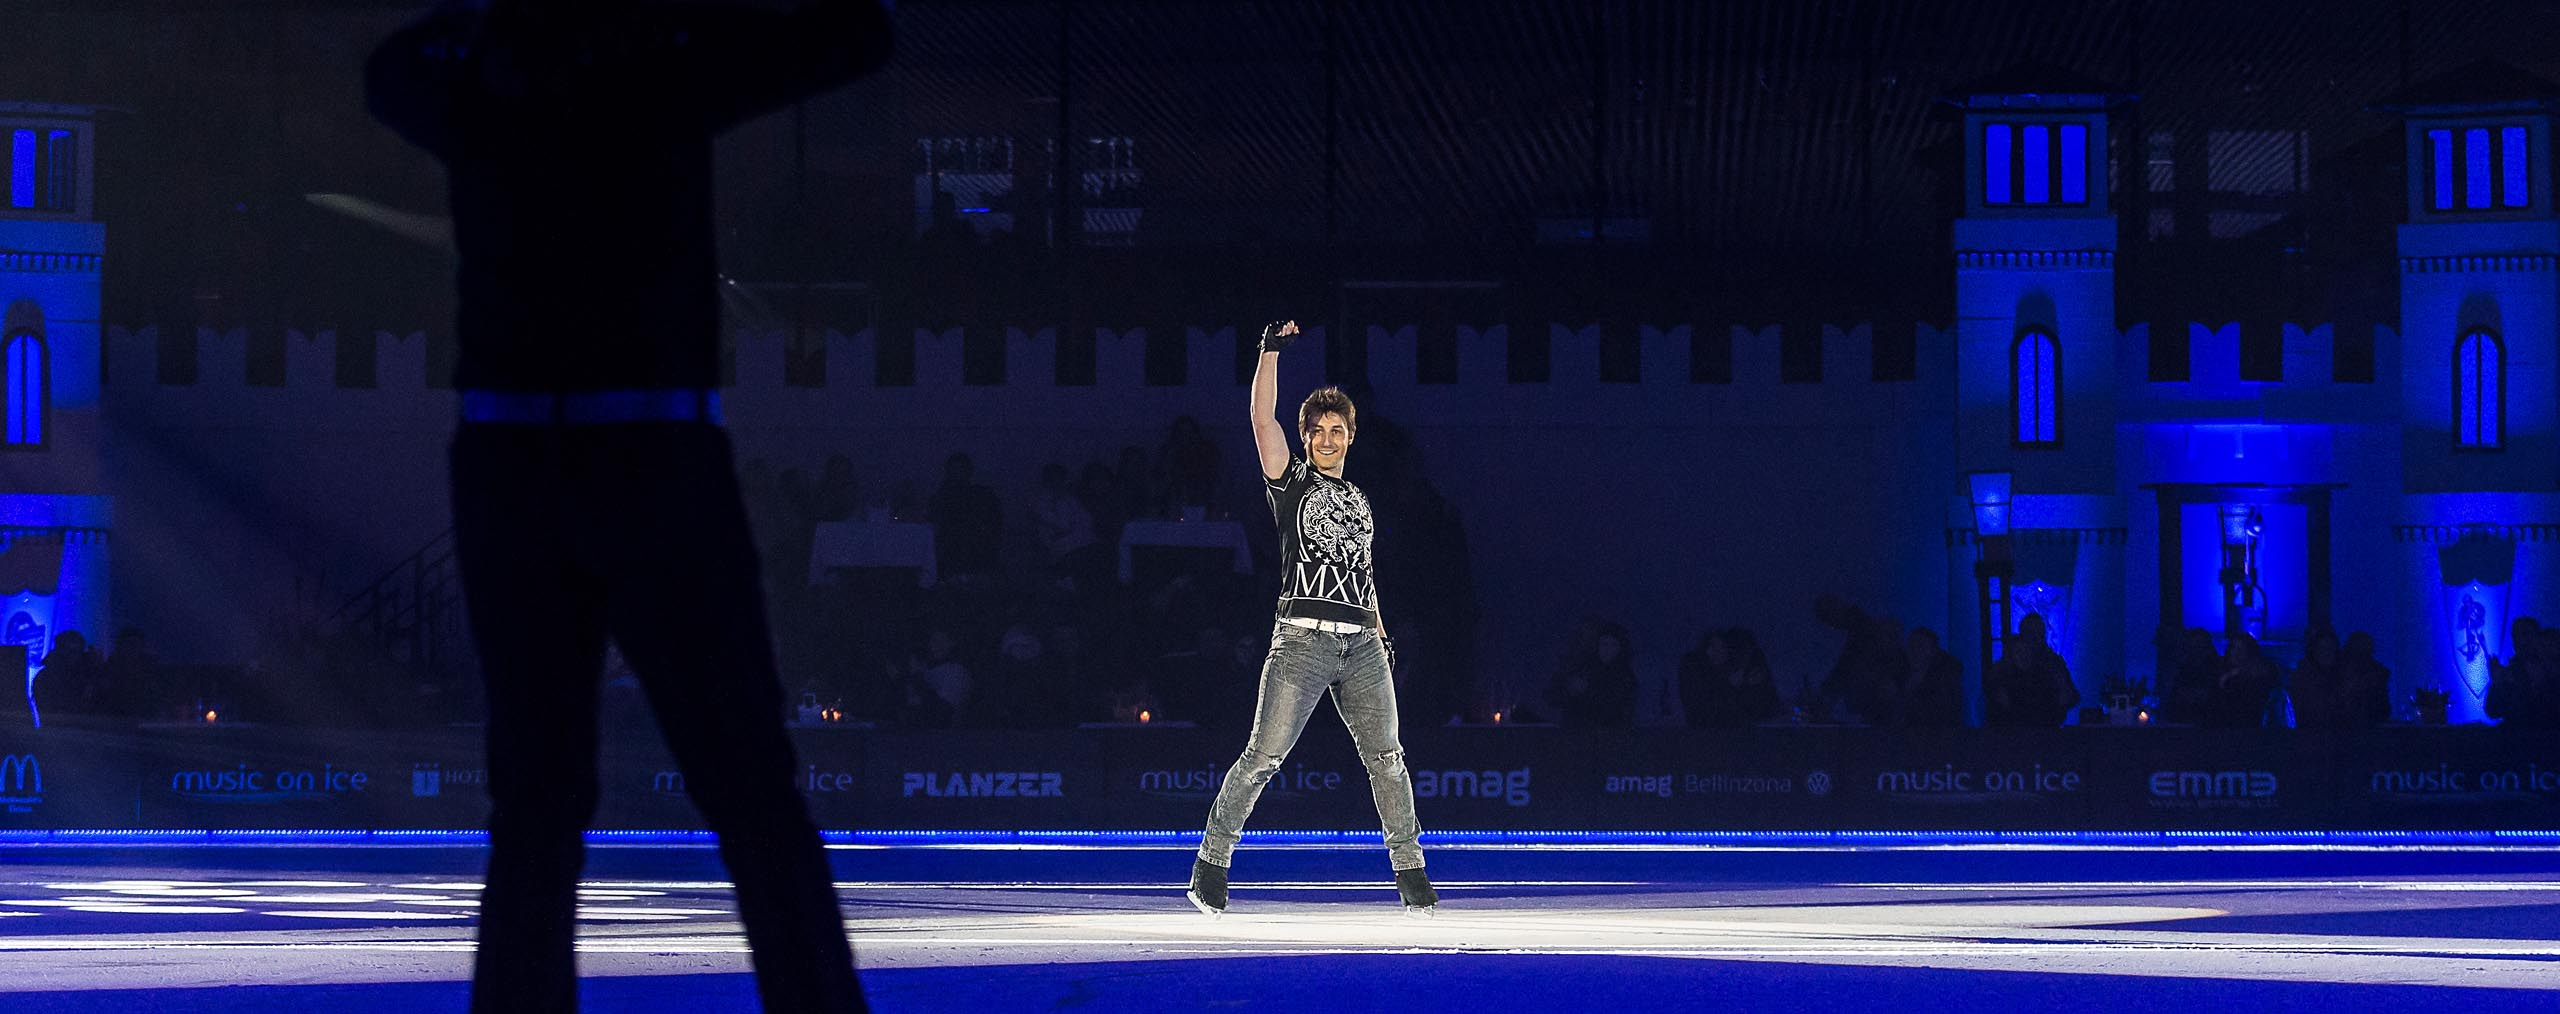 Brian Joubert Music on Ice